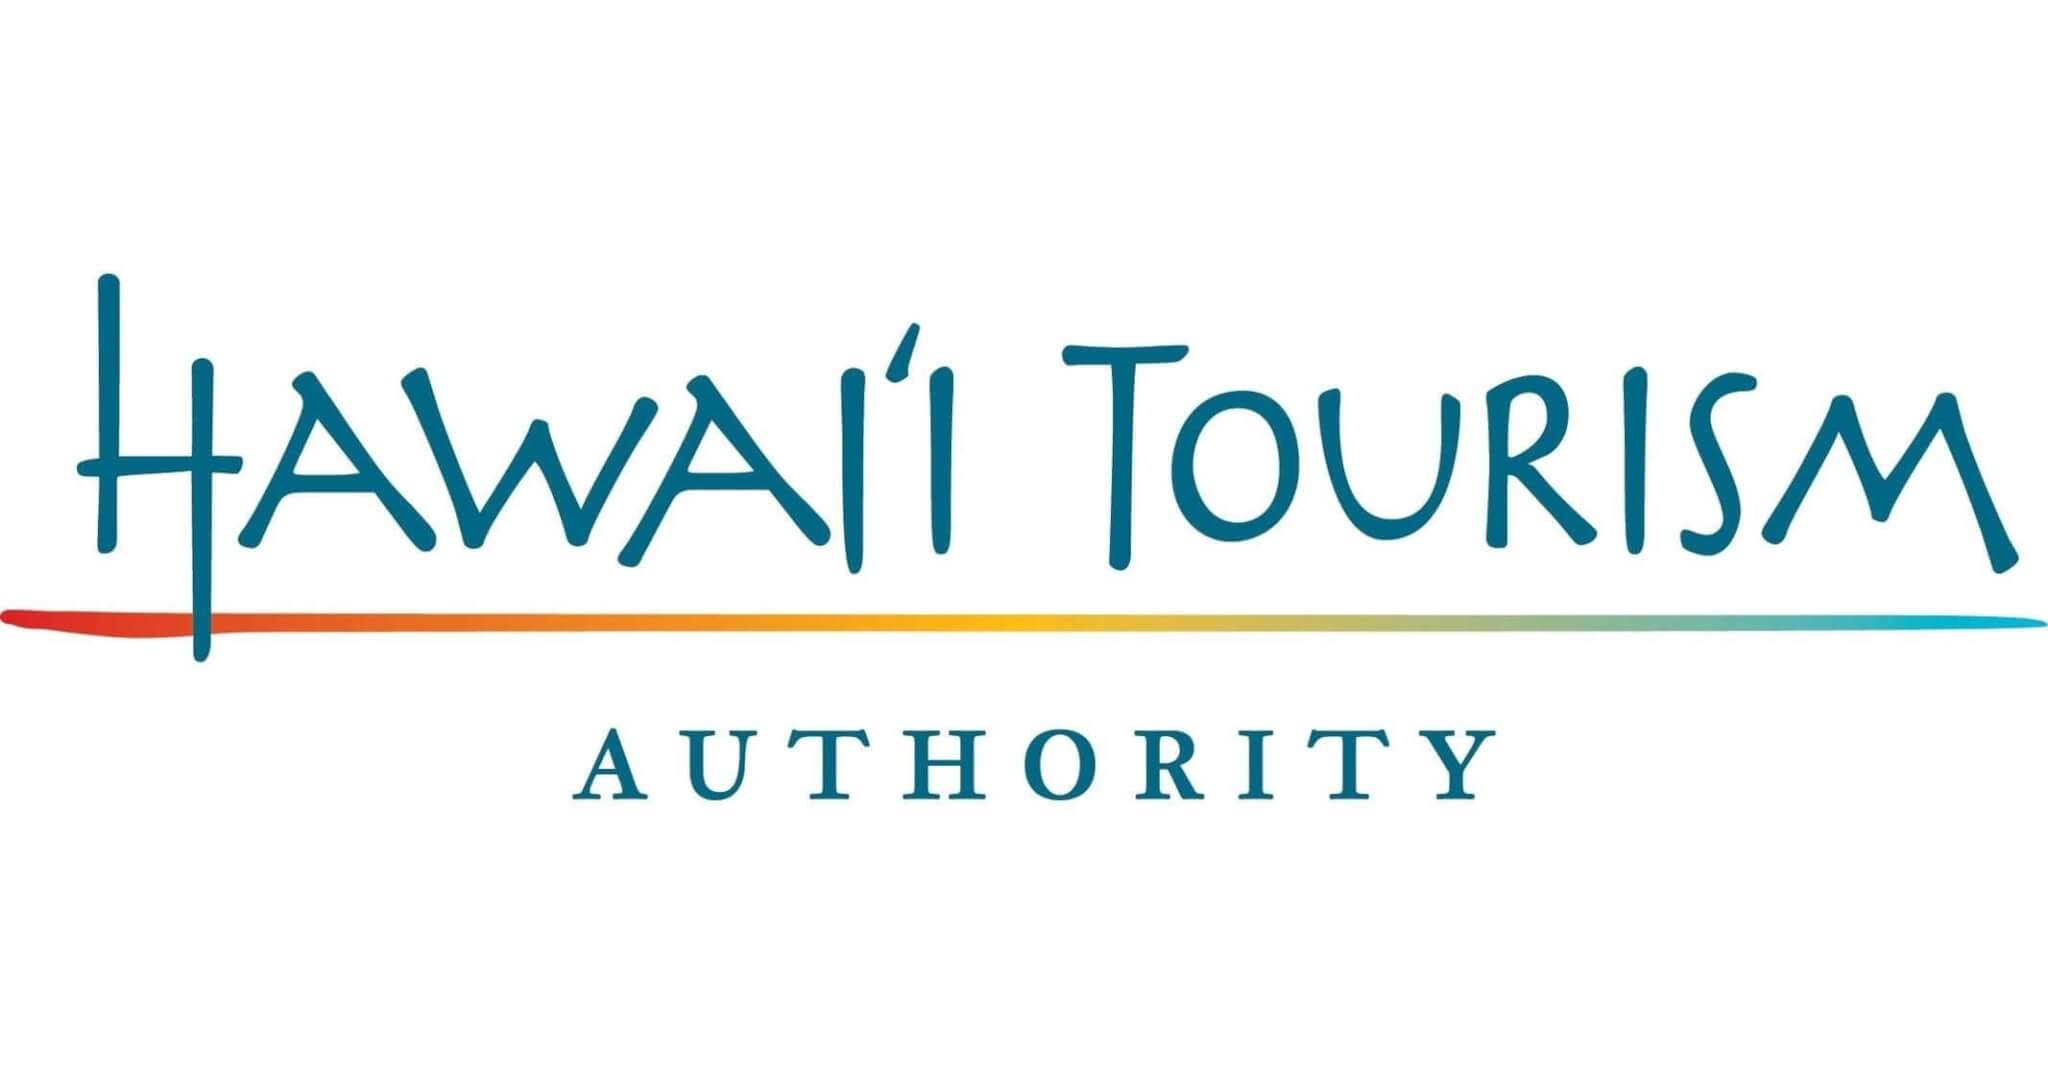 Hawaii Tourism Authority supports community events and programs